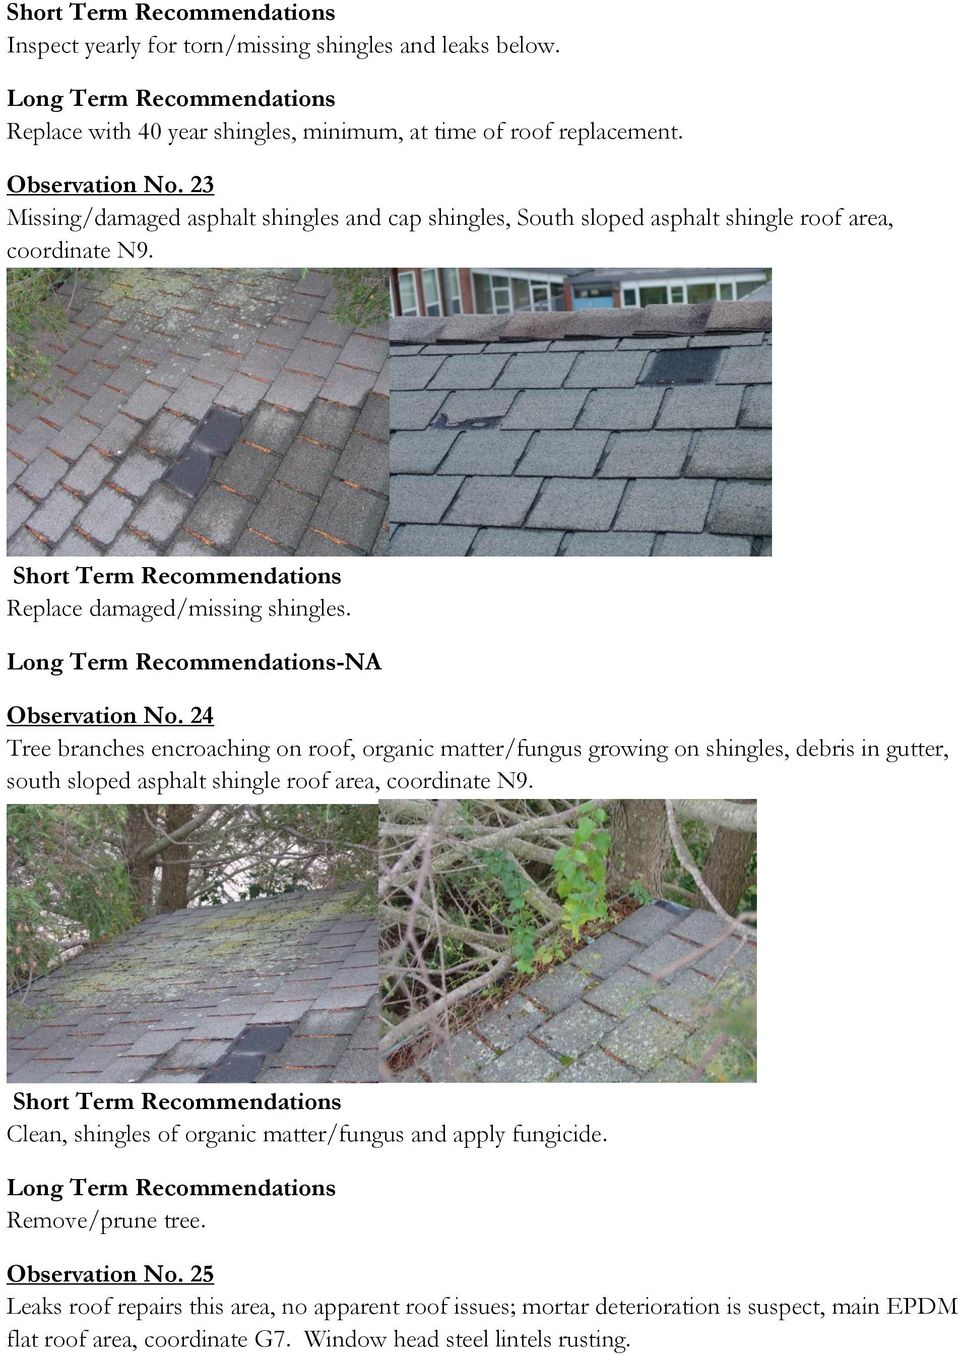 24 Tree branches encroaching on roof, organic matter/fungus growing on shingles, debris in gutter, south sloped asphalt shingle roof area, coordinate N9.